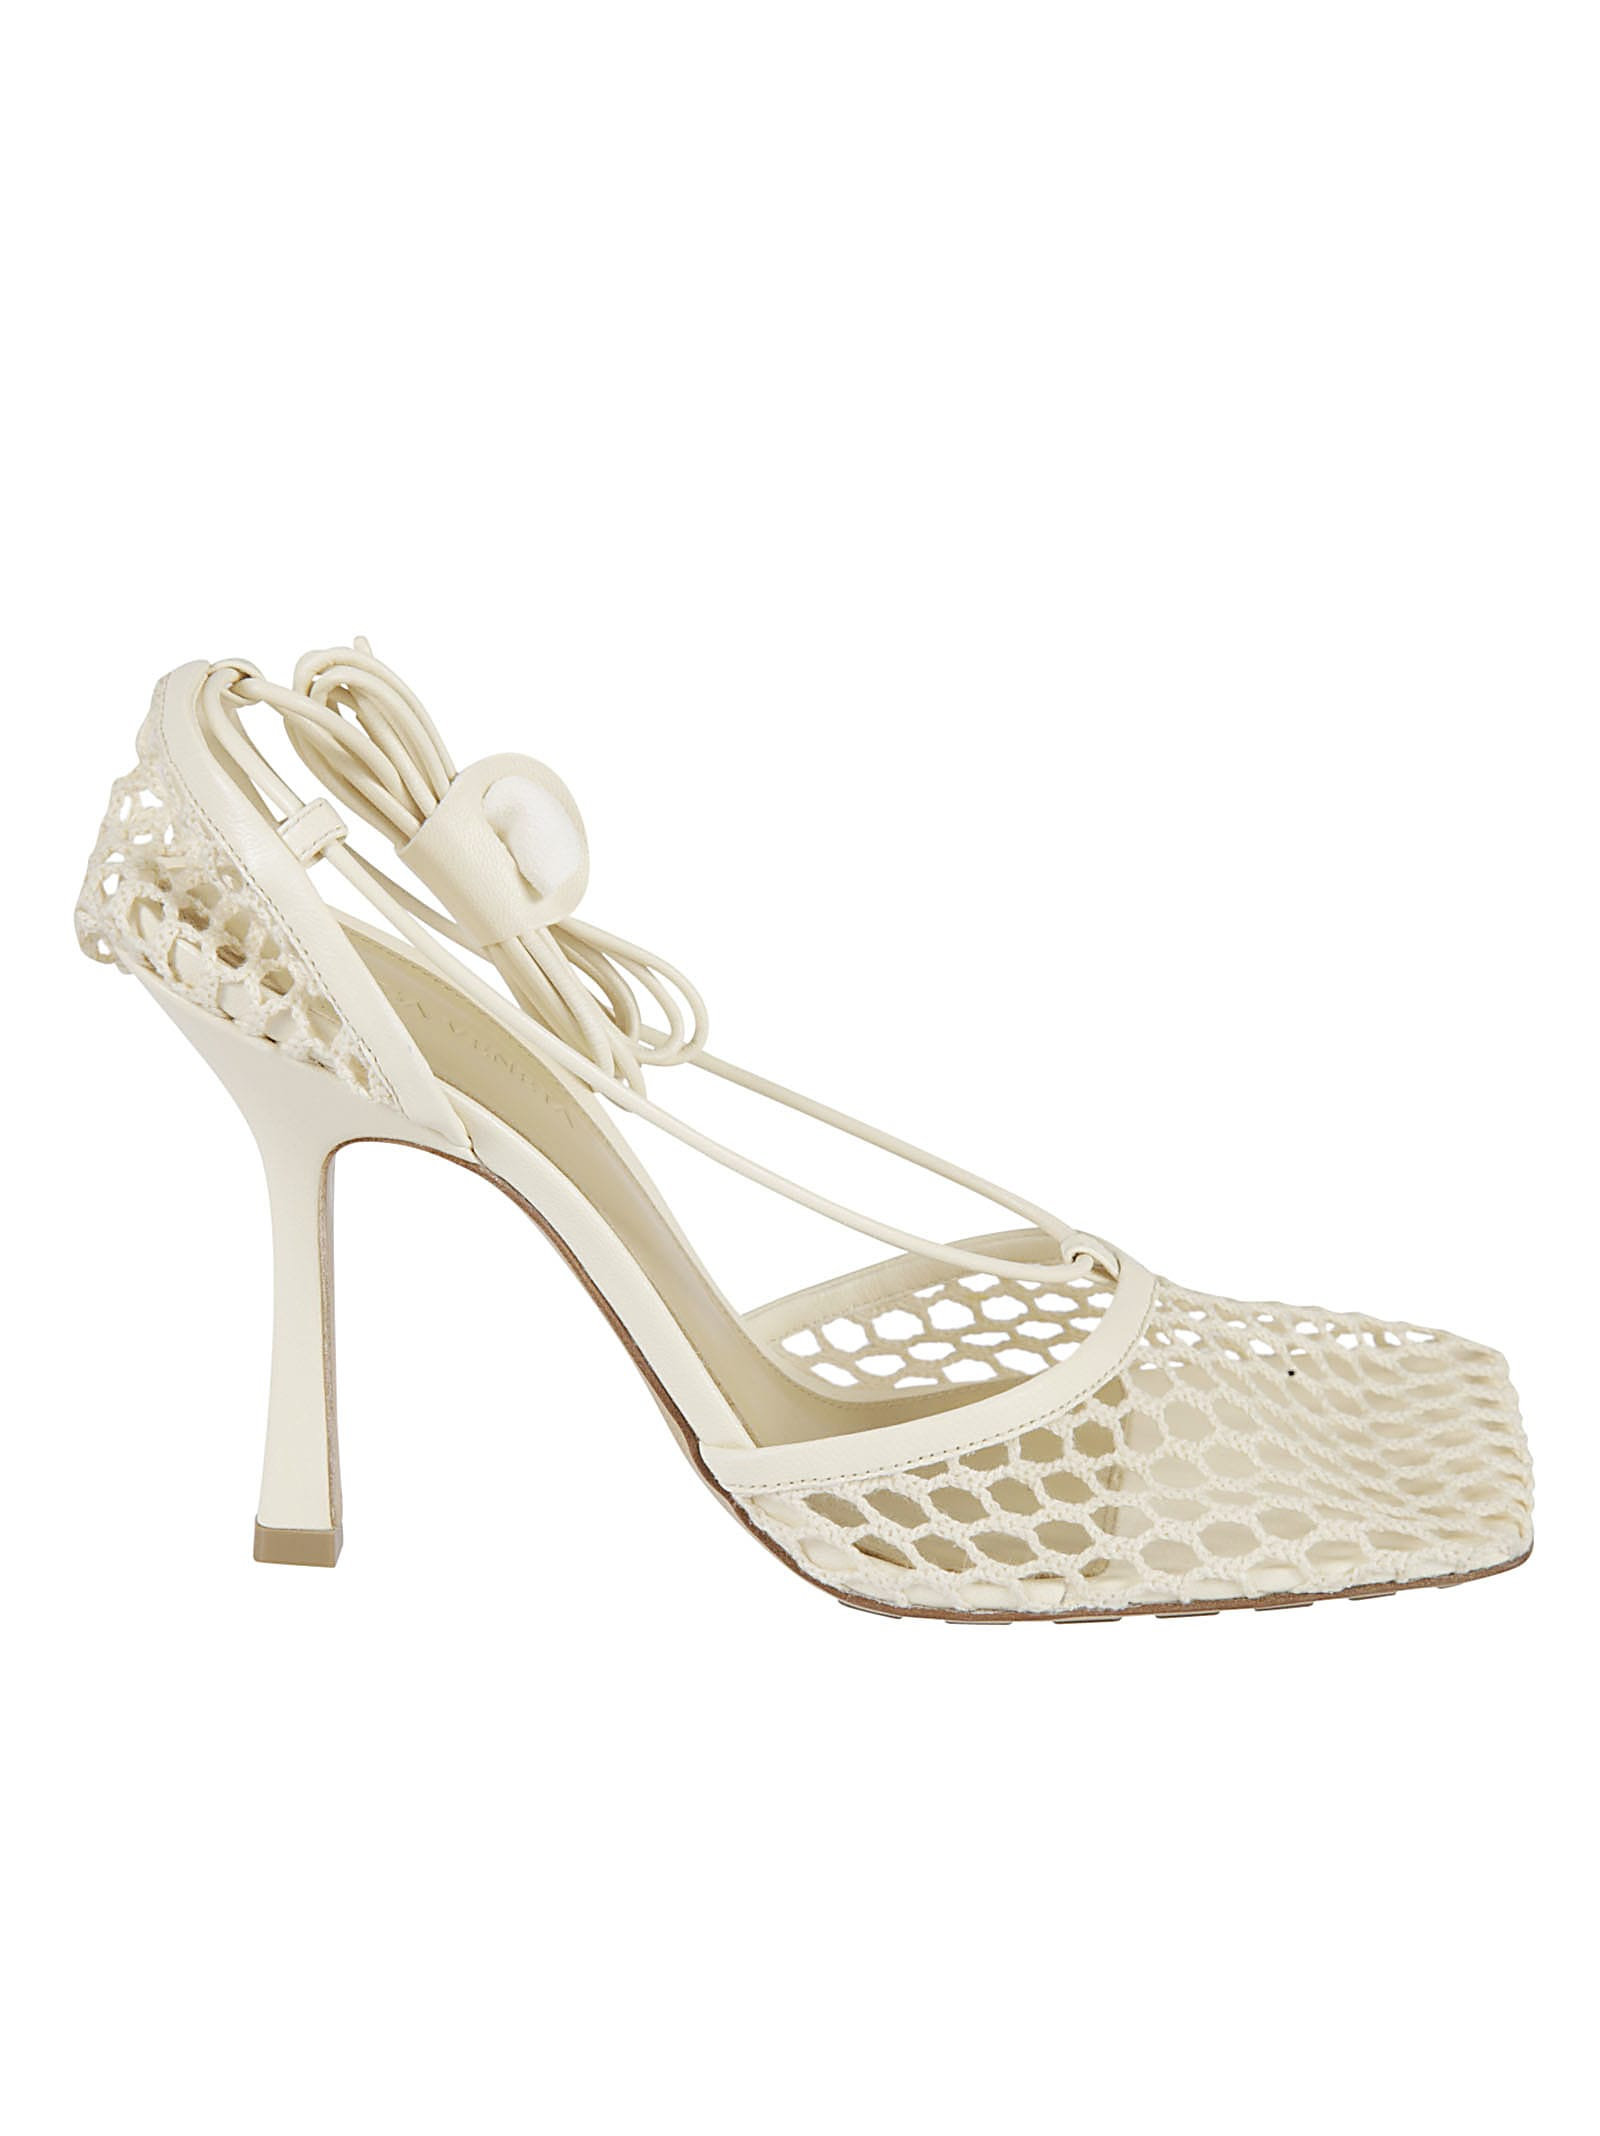 Bottega Veneta Sandals STRETCH WEB SANDALS